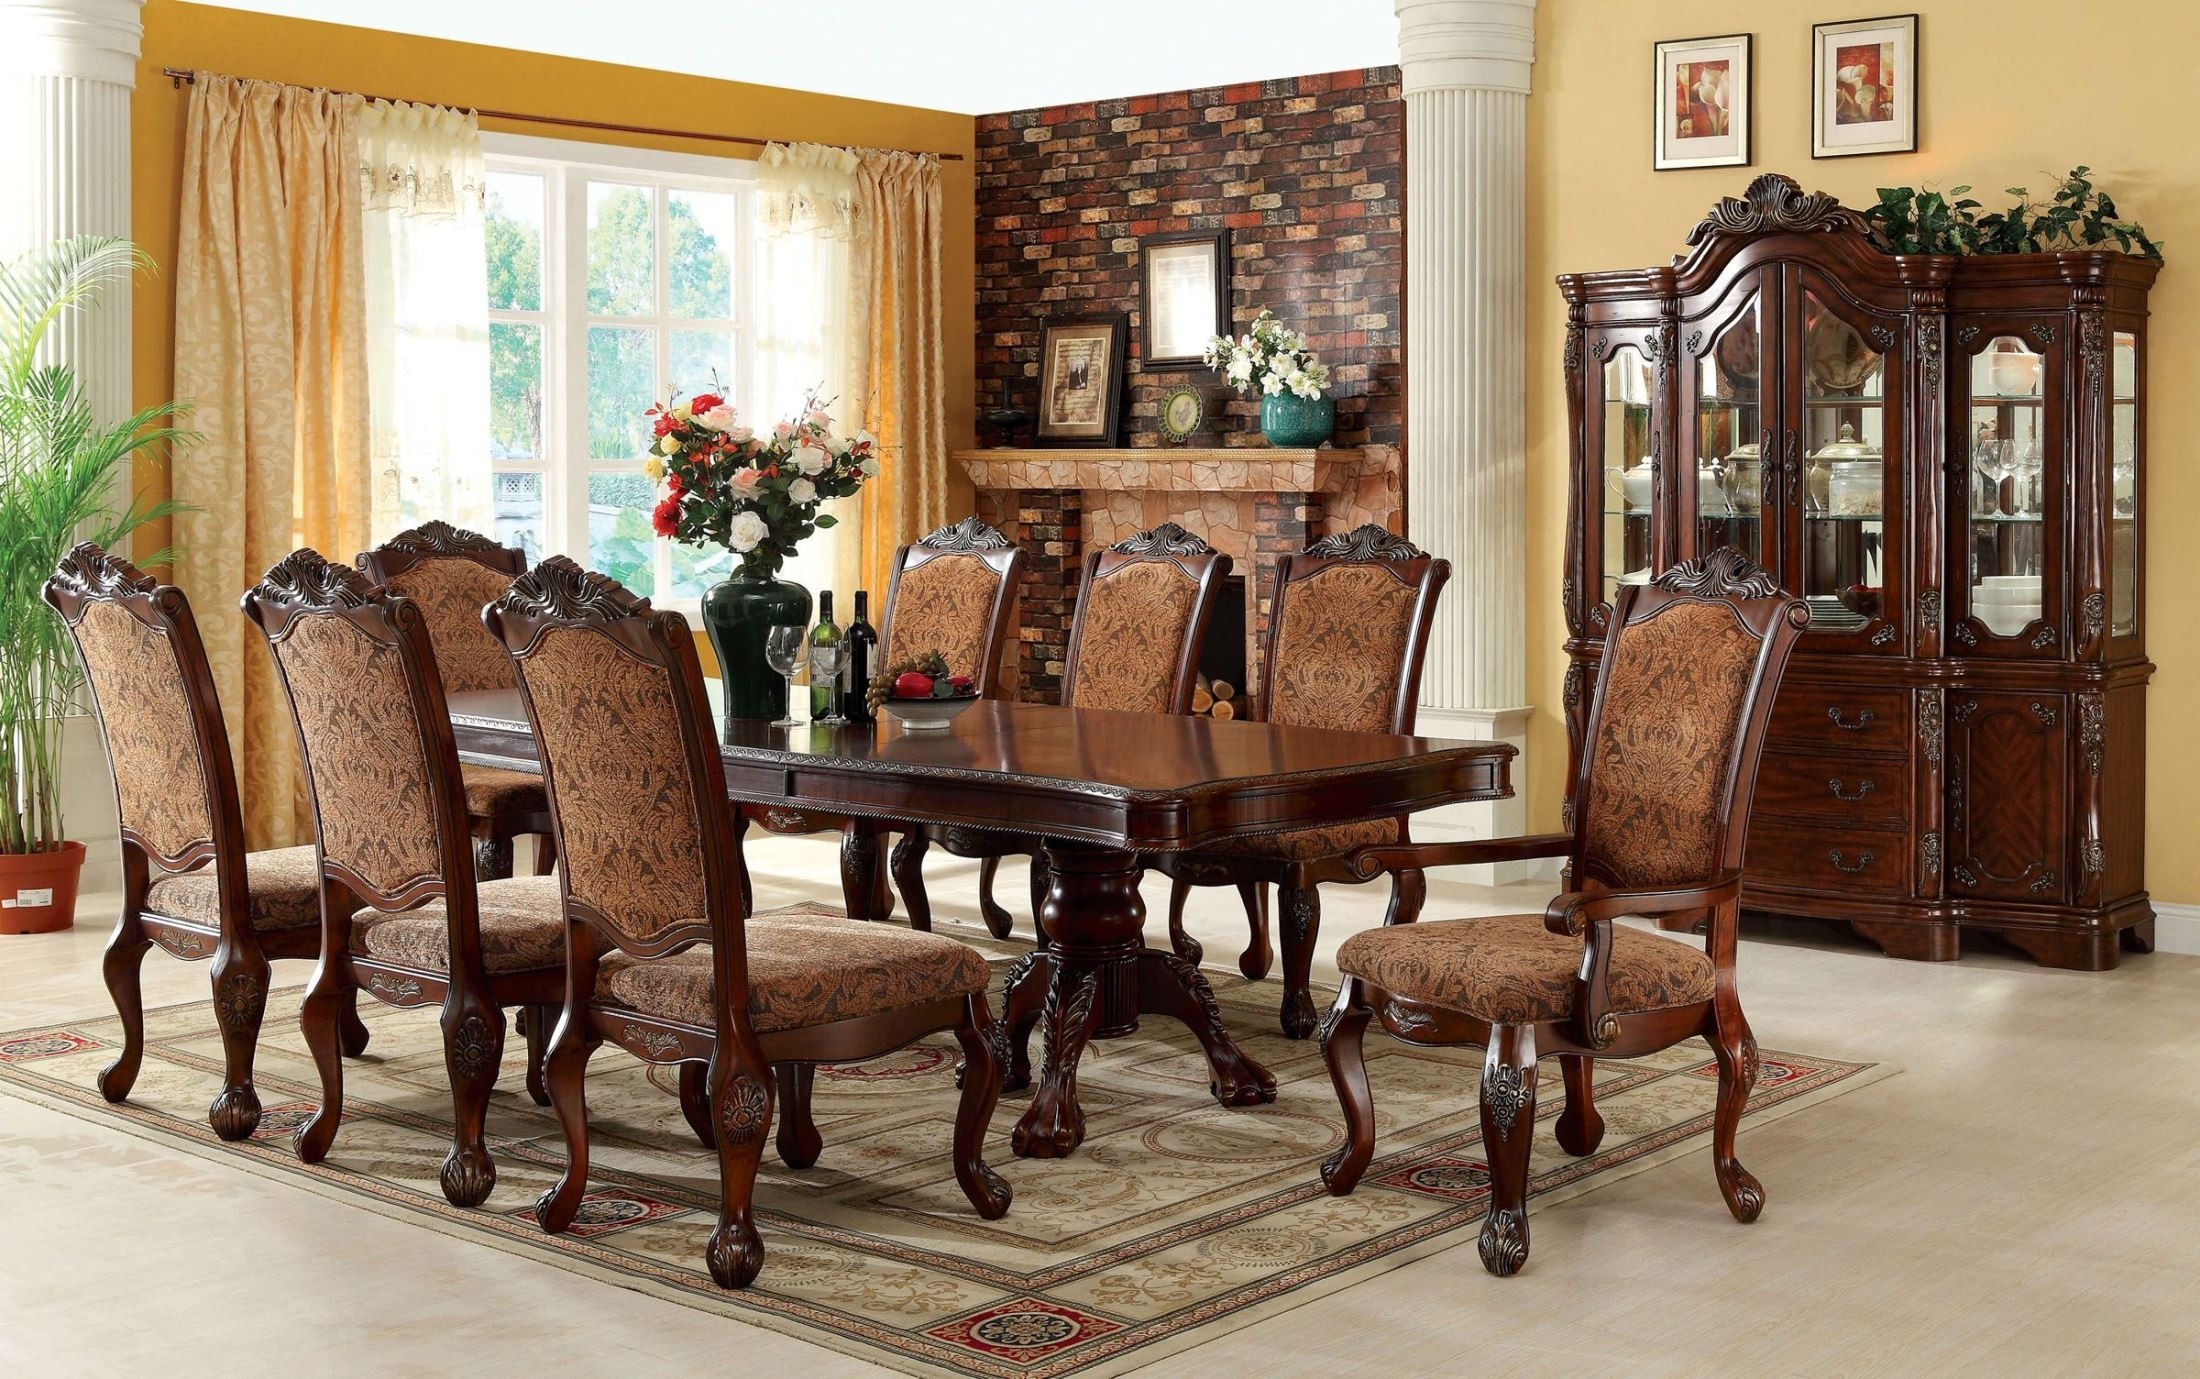 Cromwell antique cherry formal dining room set cm3103t for Beautiful dining room furniture